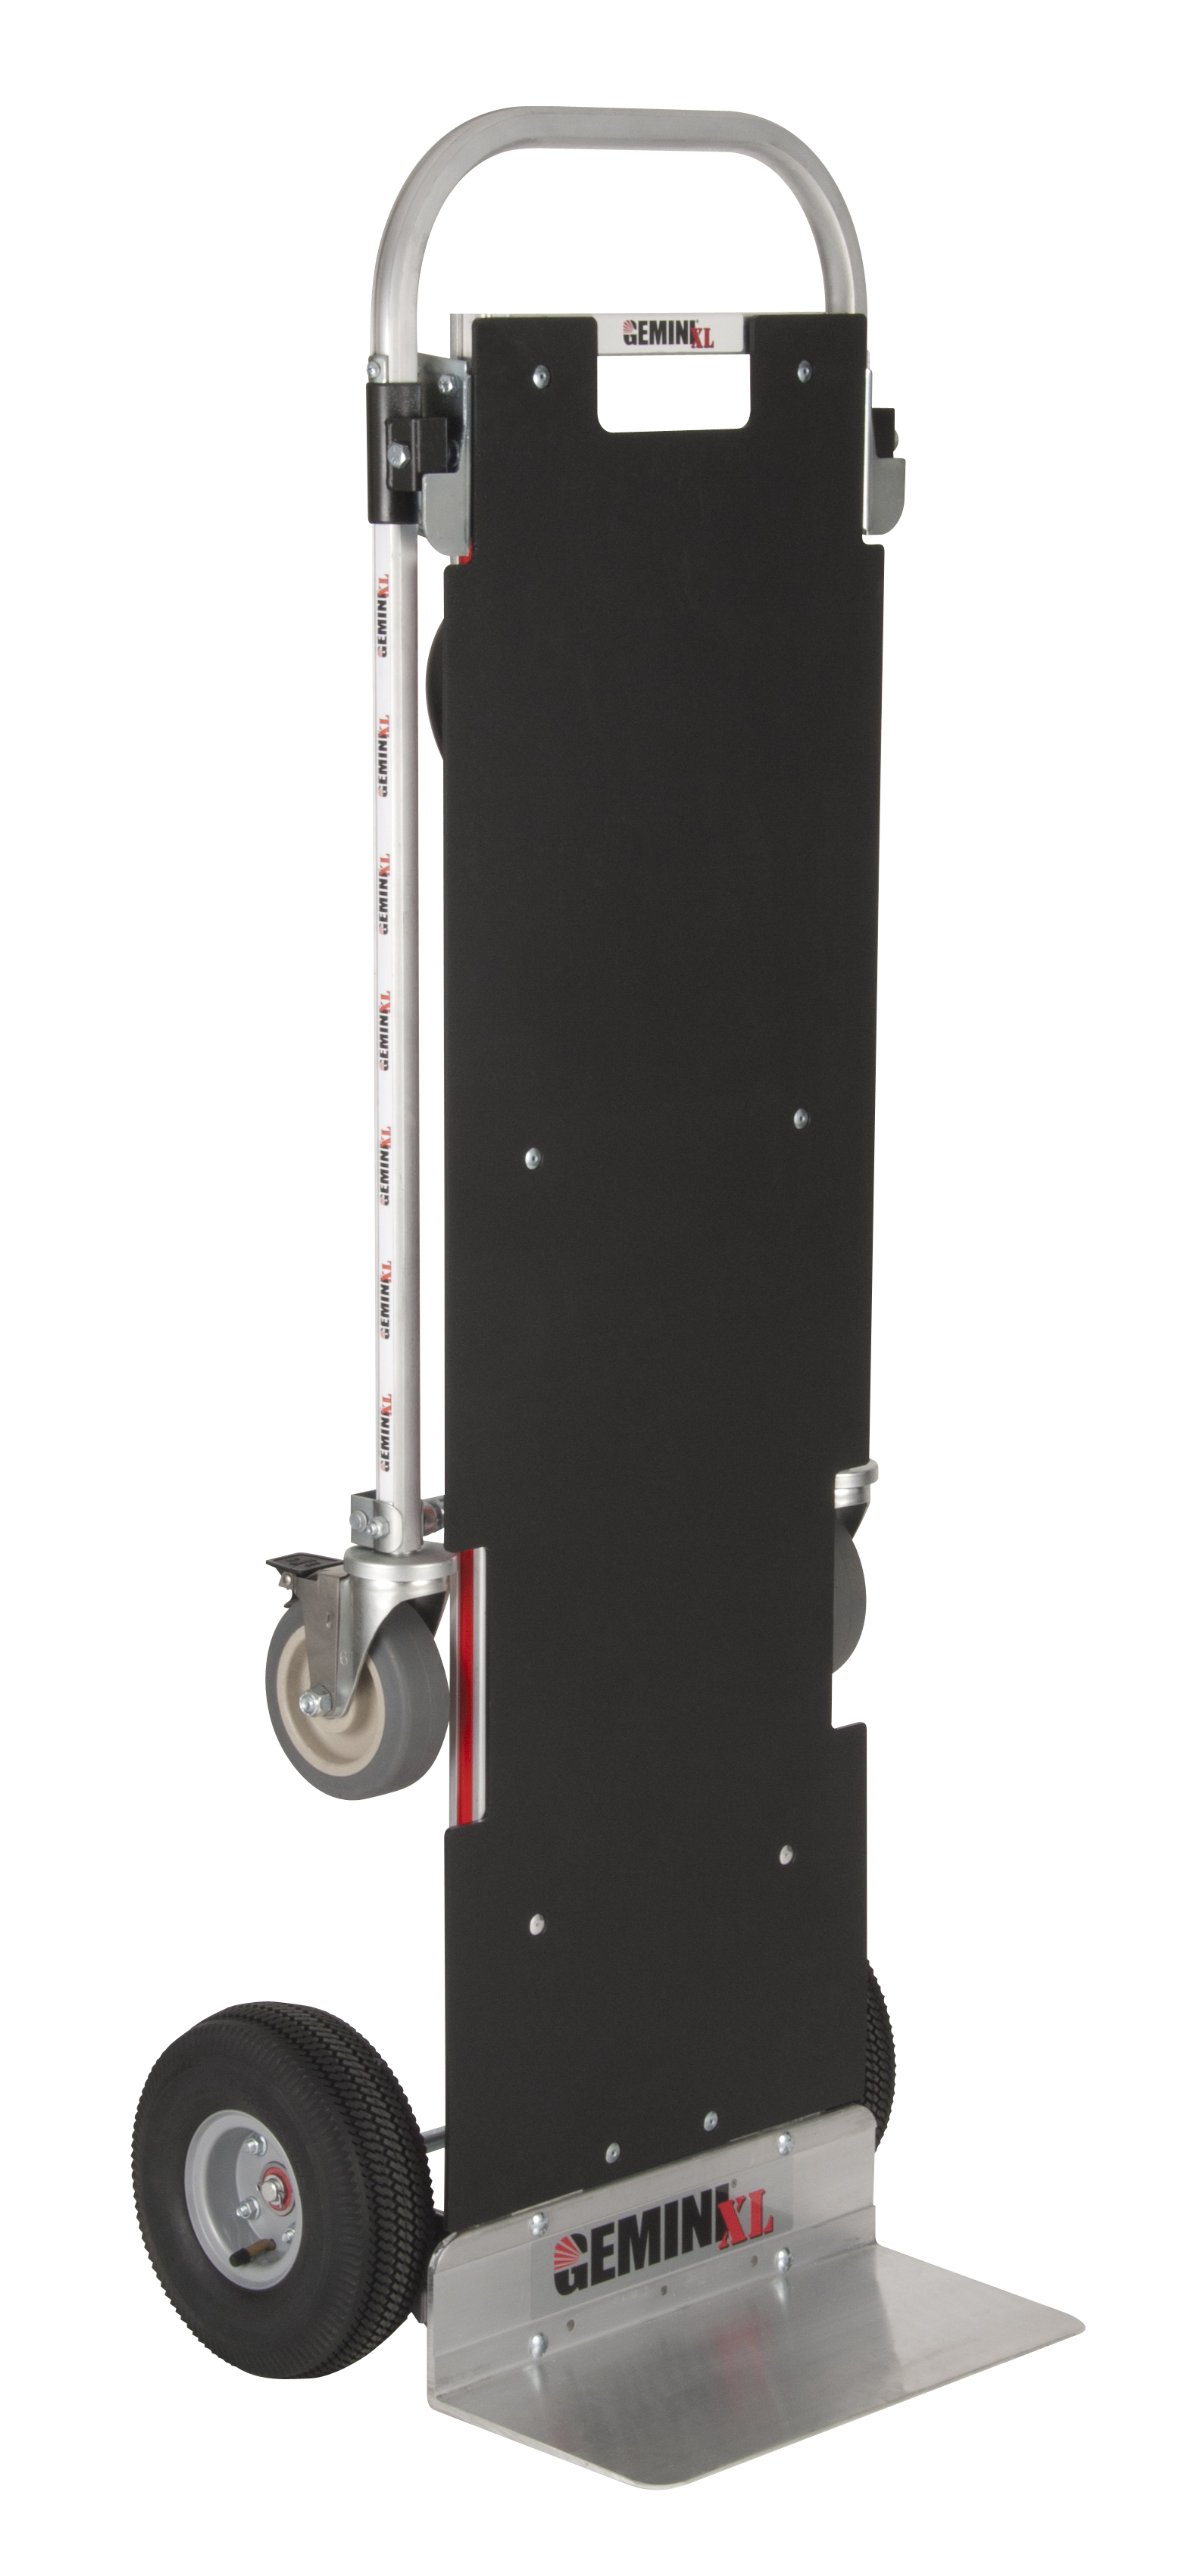 Magline XLSP Gemini XL Convertible Hand Truck, Pneumatic Wheels, 500 lbs Load Capacity, 62-3/4'' Height, 57-1/4'' Length x 22-3/4'' Width